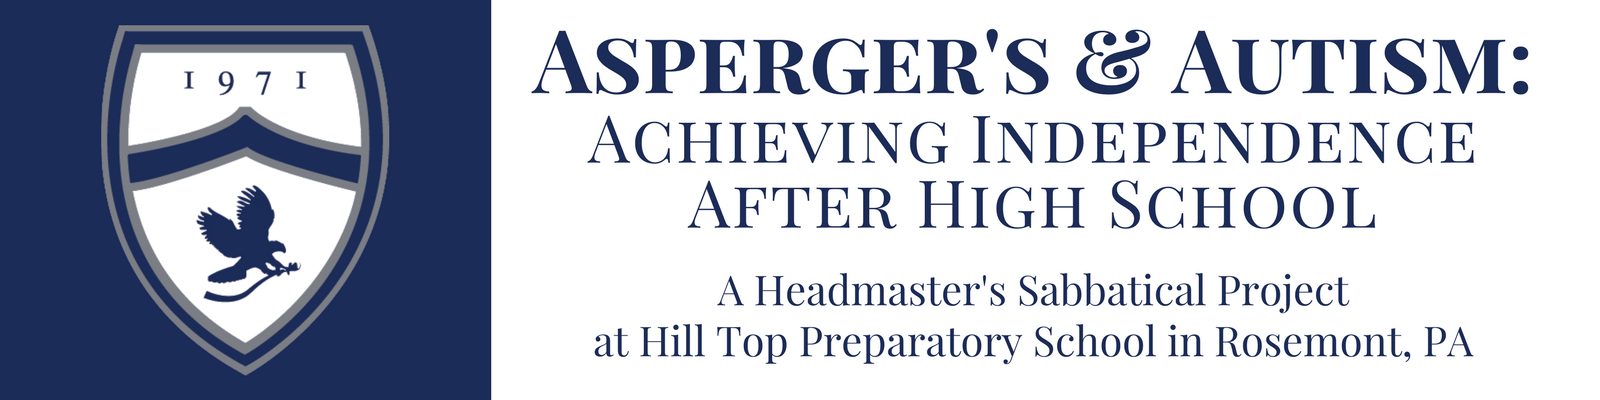 Asperger's and Autism:  Achieving Independence After High School